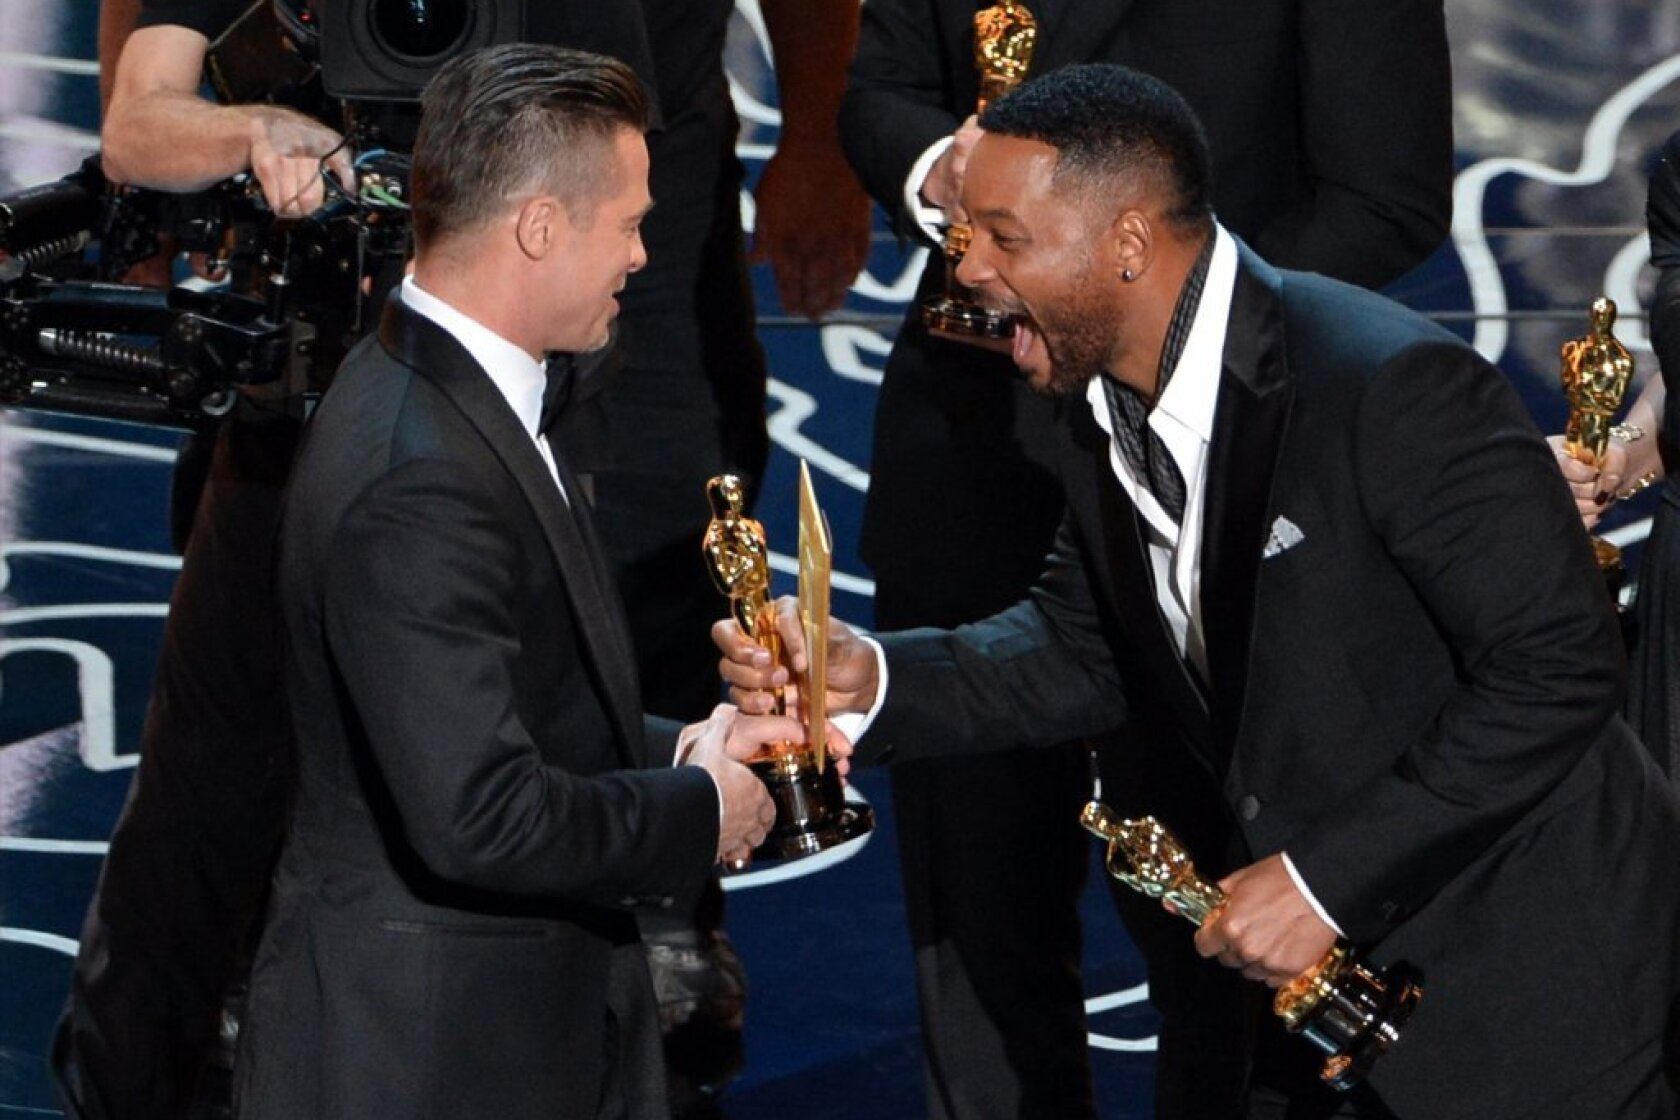 Academy Awards 2014: '12 Years a Slave' wins best picture